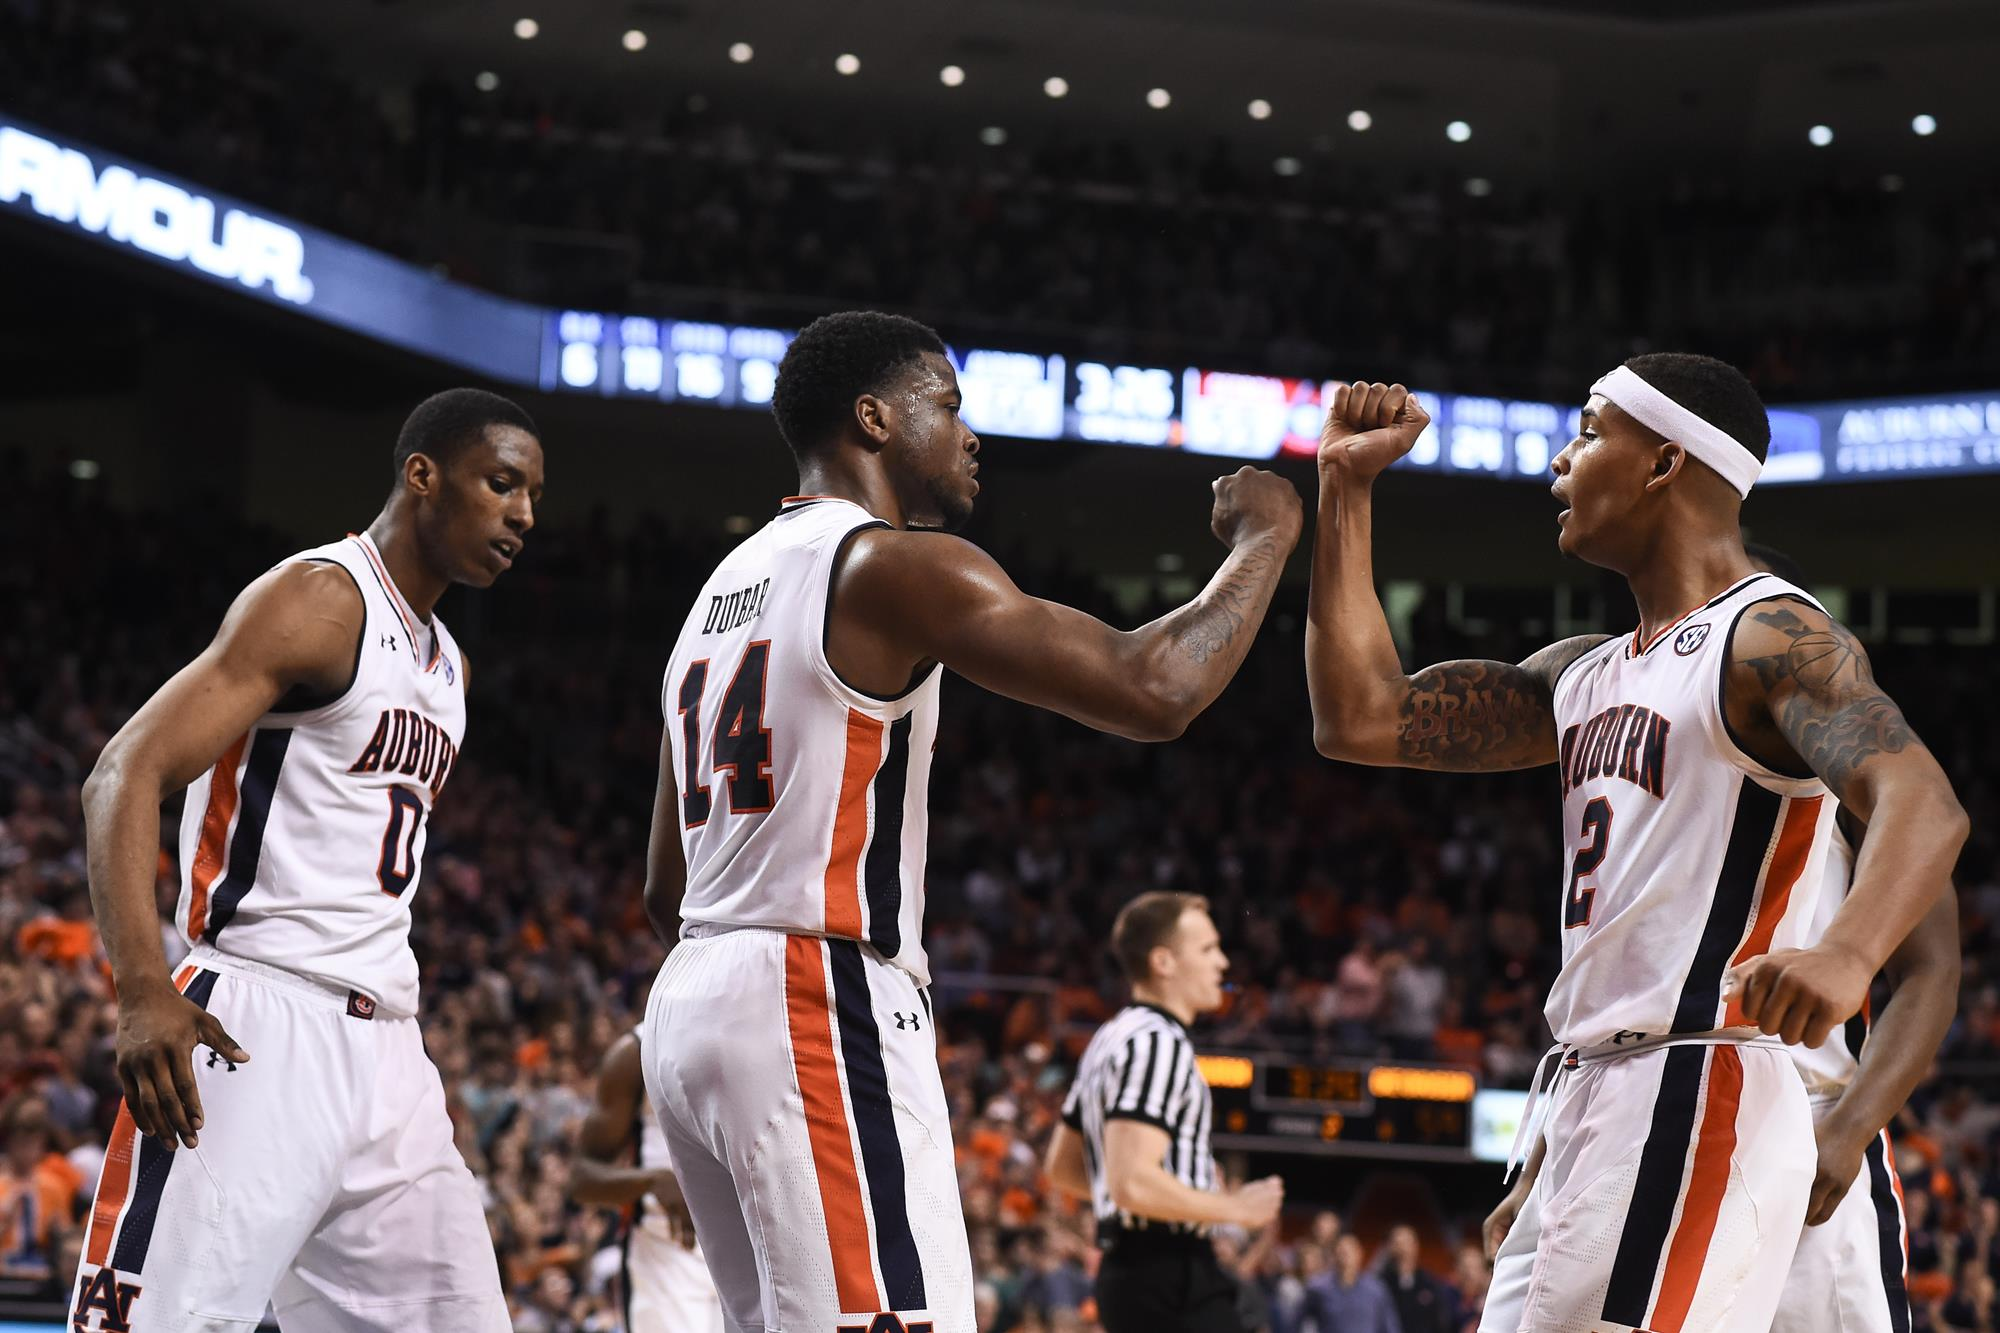 Keep On Running Auburn Seniors To Play Final Home Game